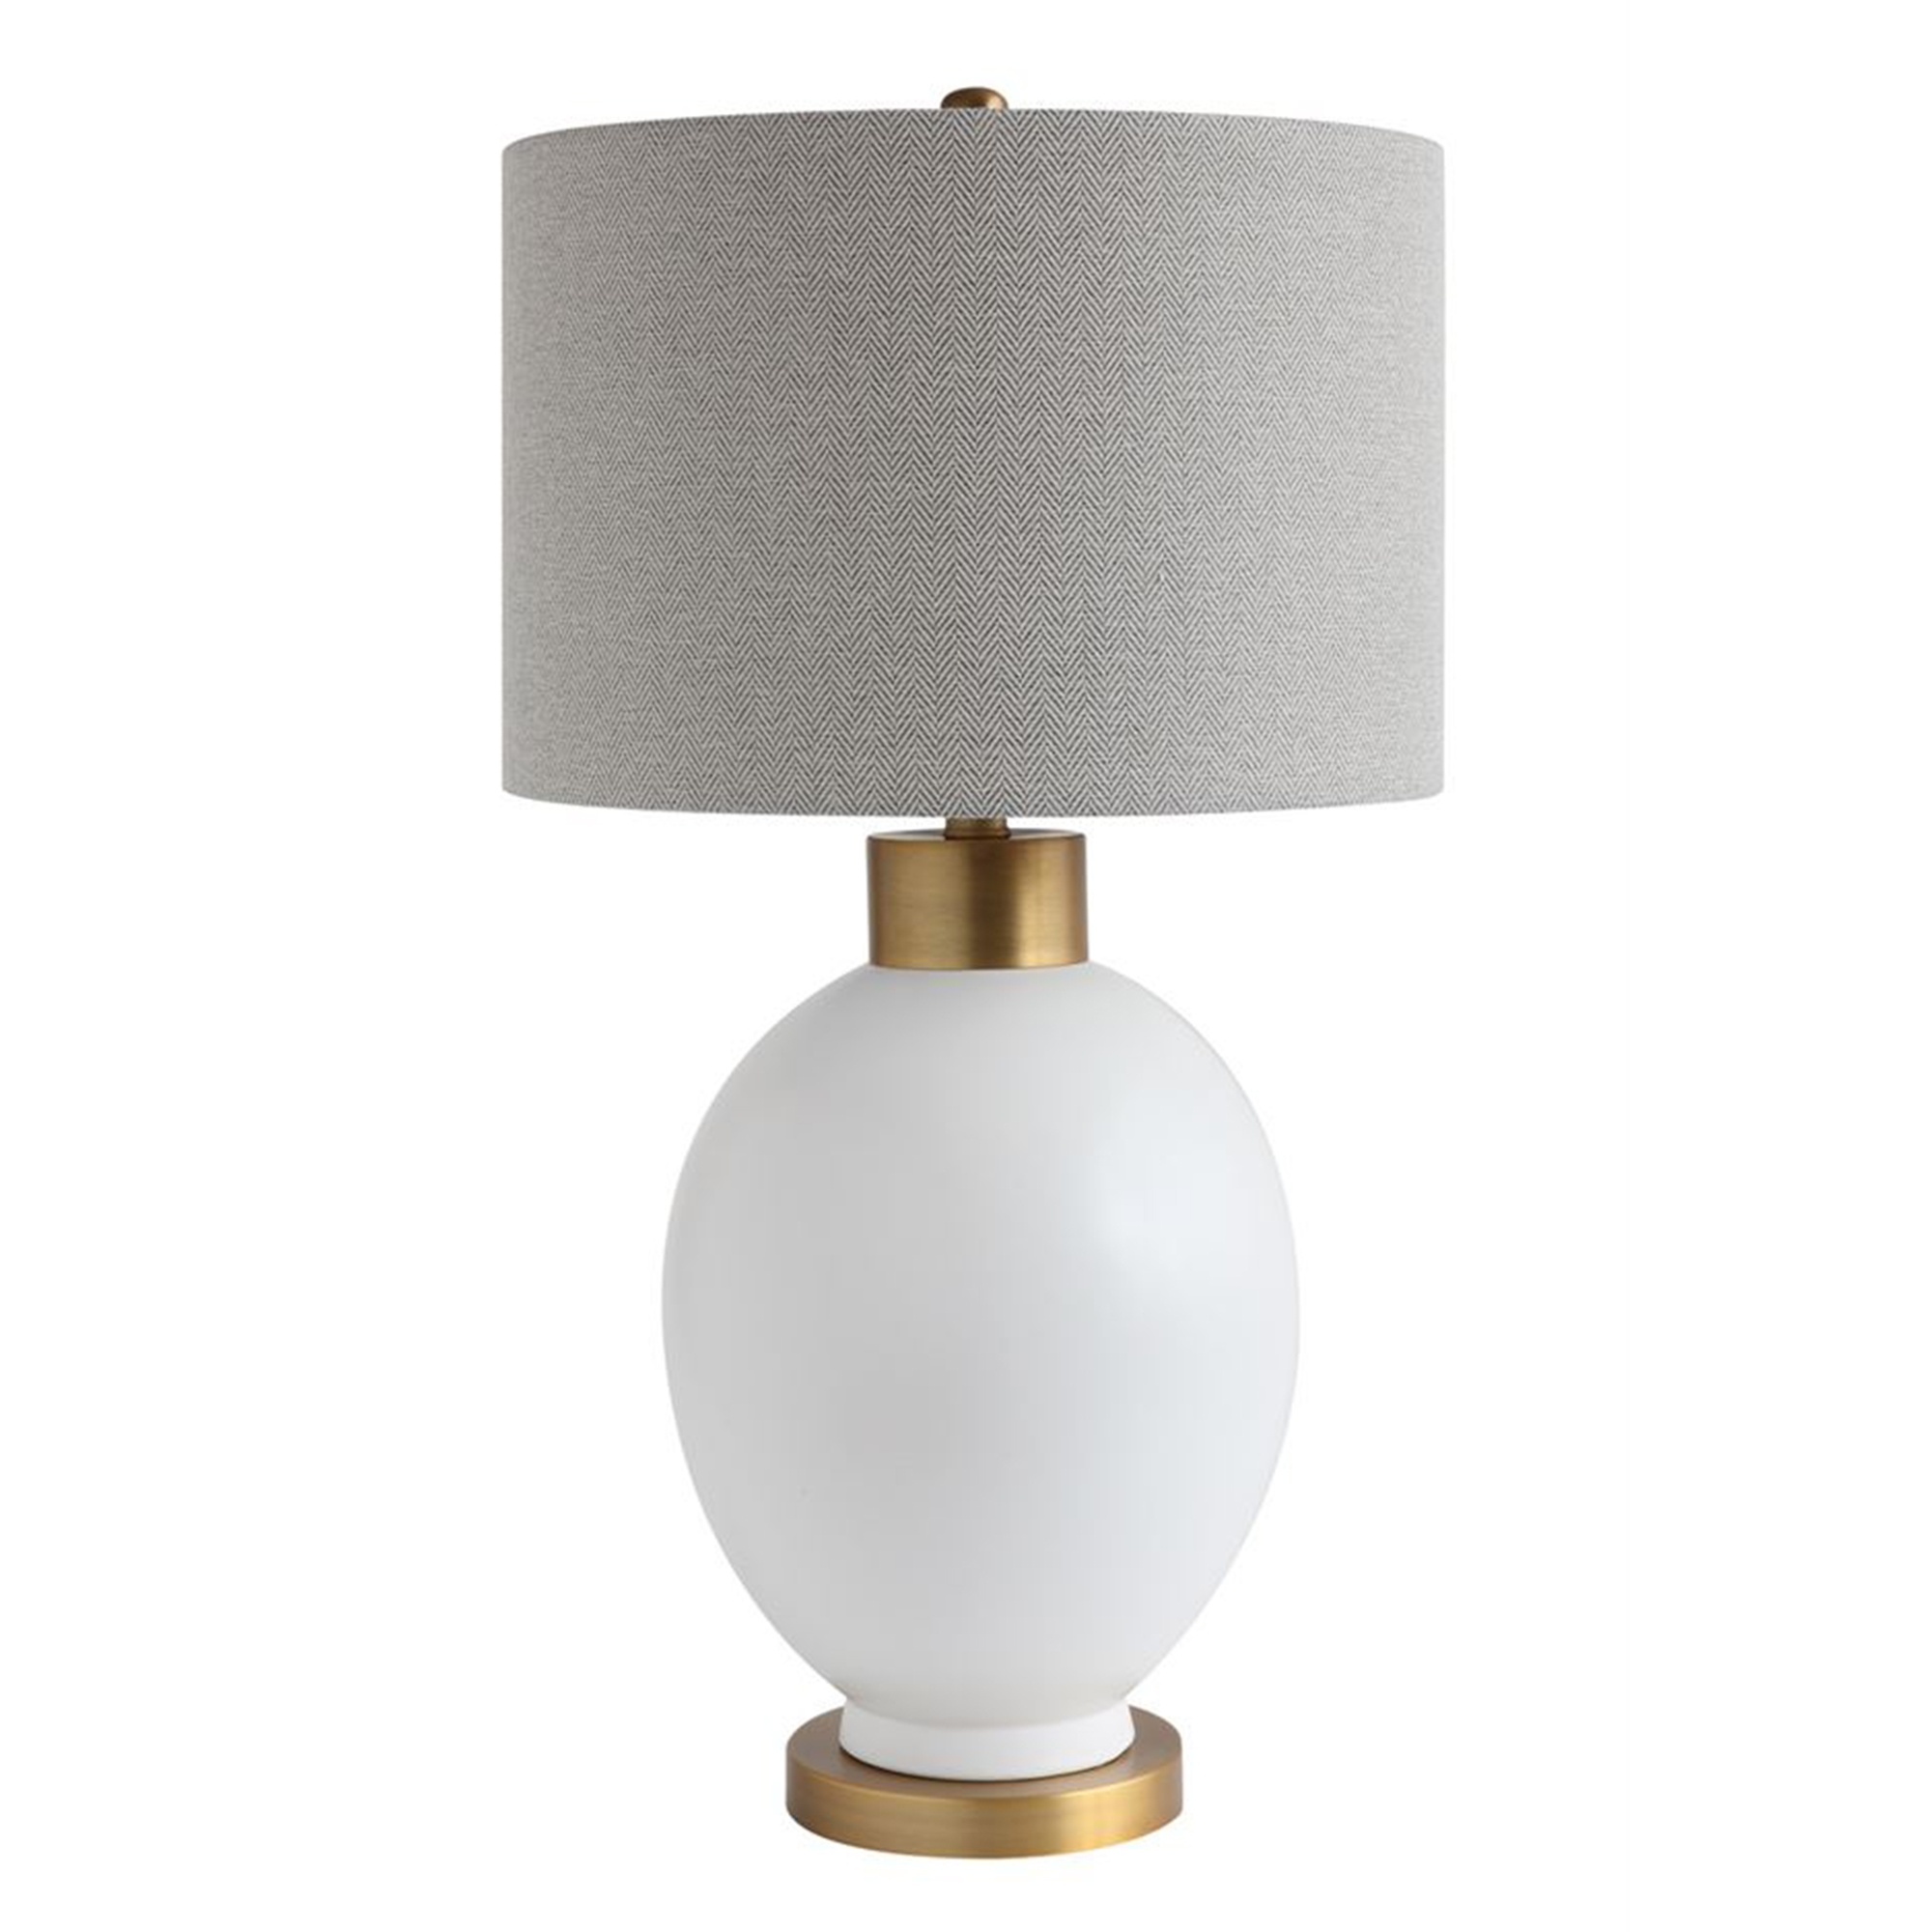 White and Gold Table Lamp with Gray Shade